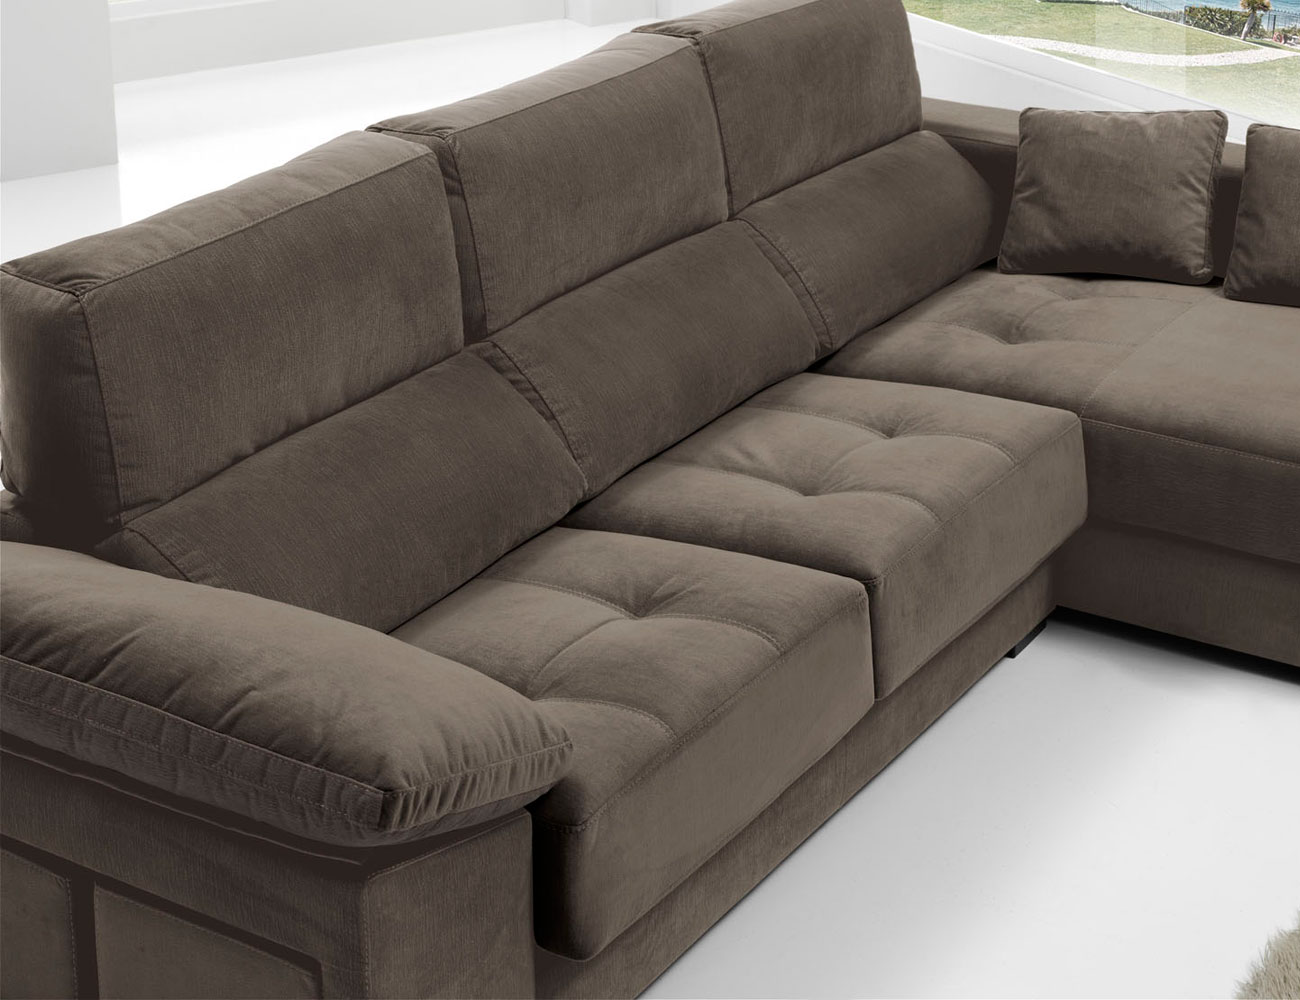 Sofa chaiselongue anti manchas bering pouf 242